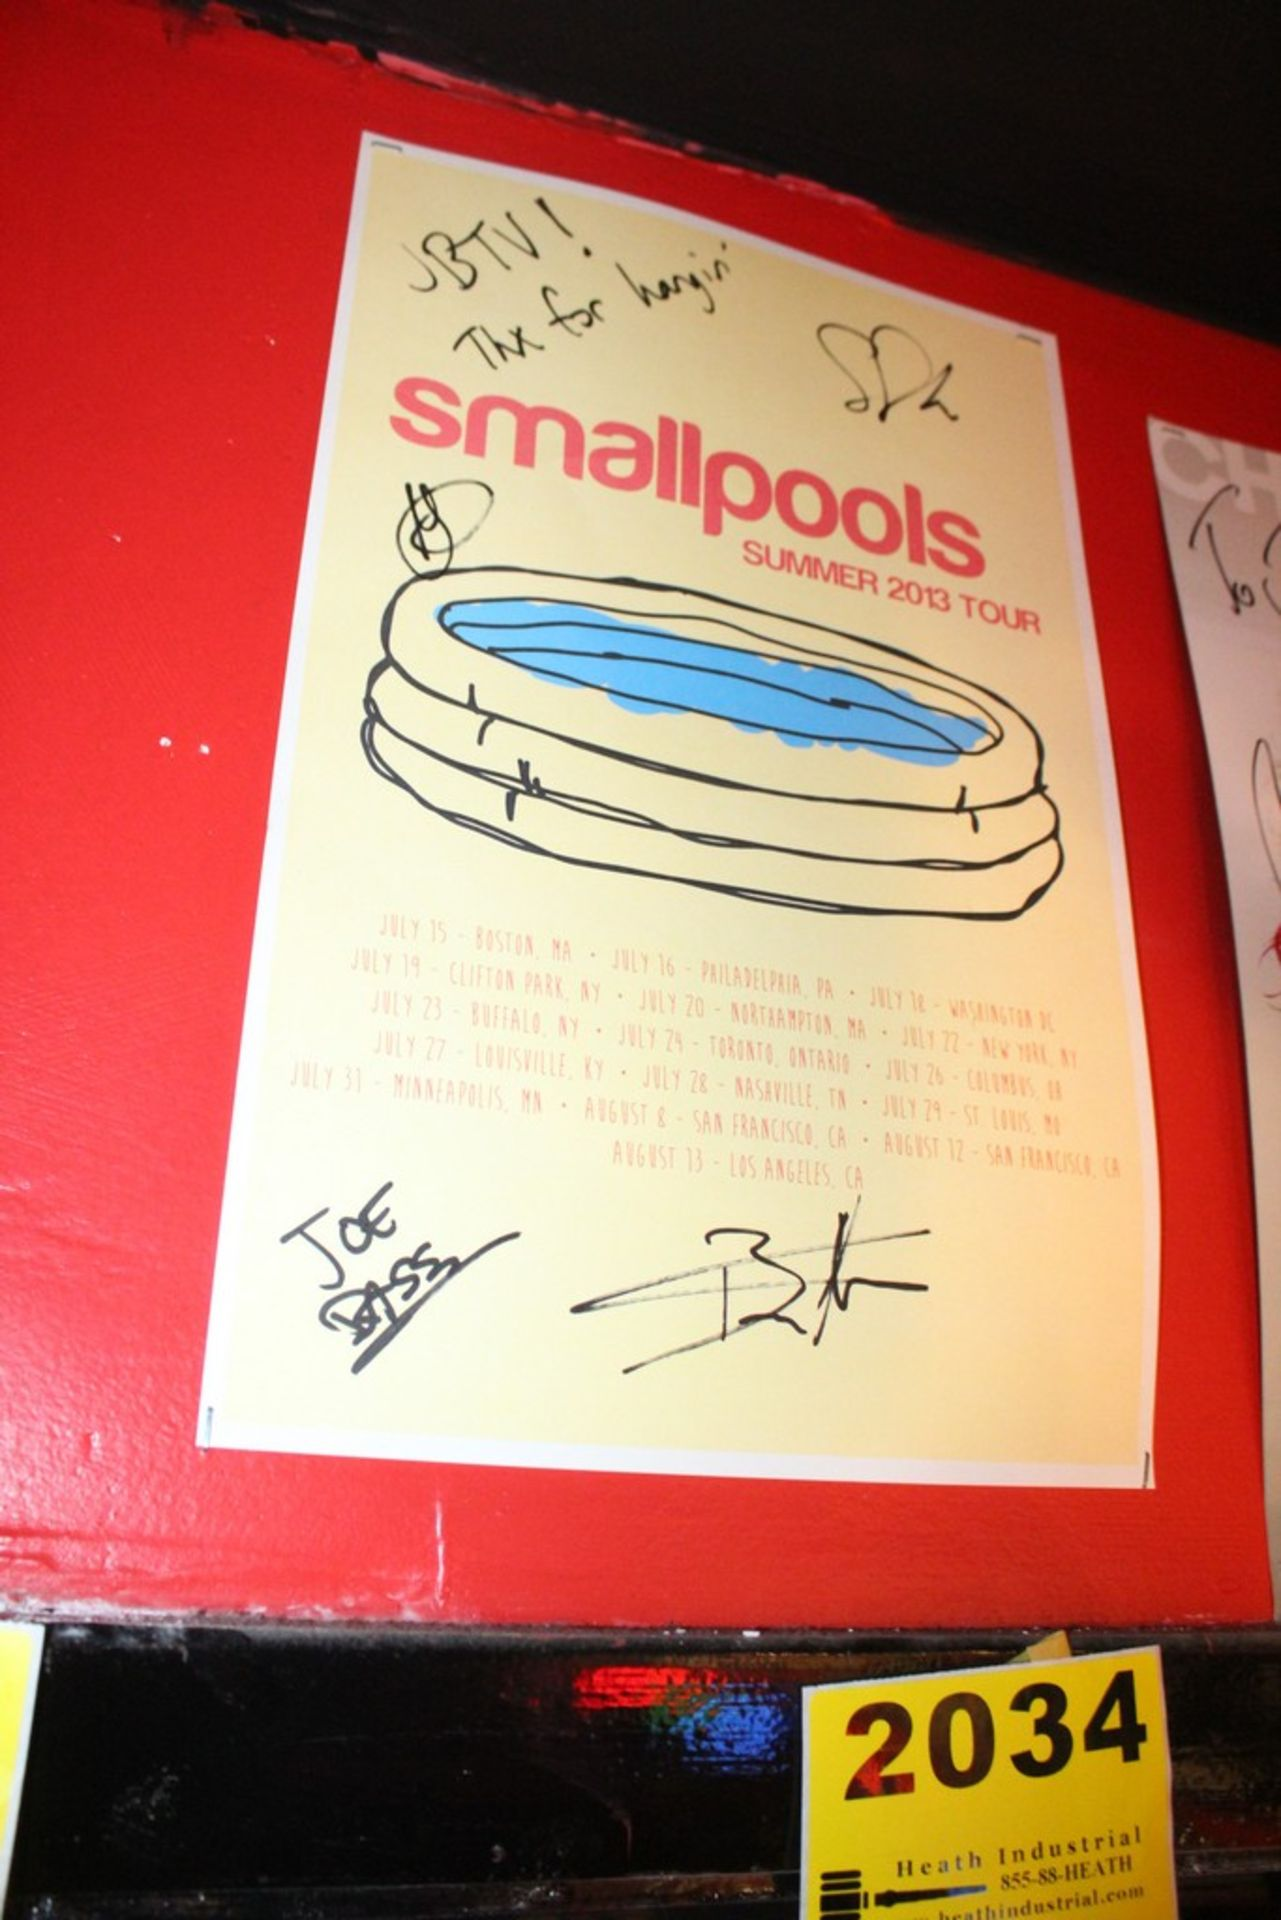 Lot 2034 - Smallpools Signed Poster